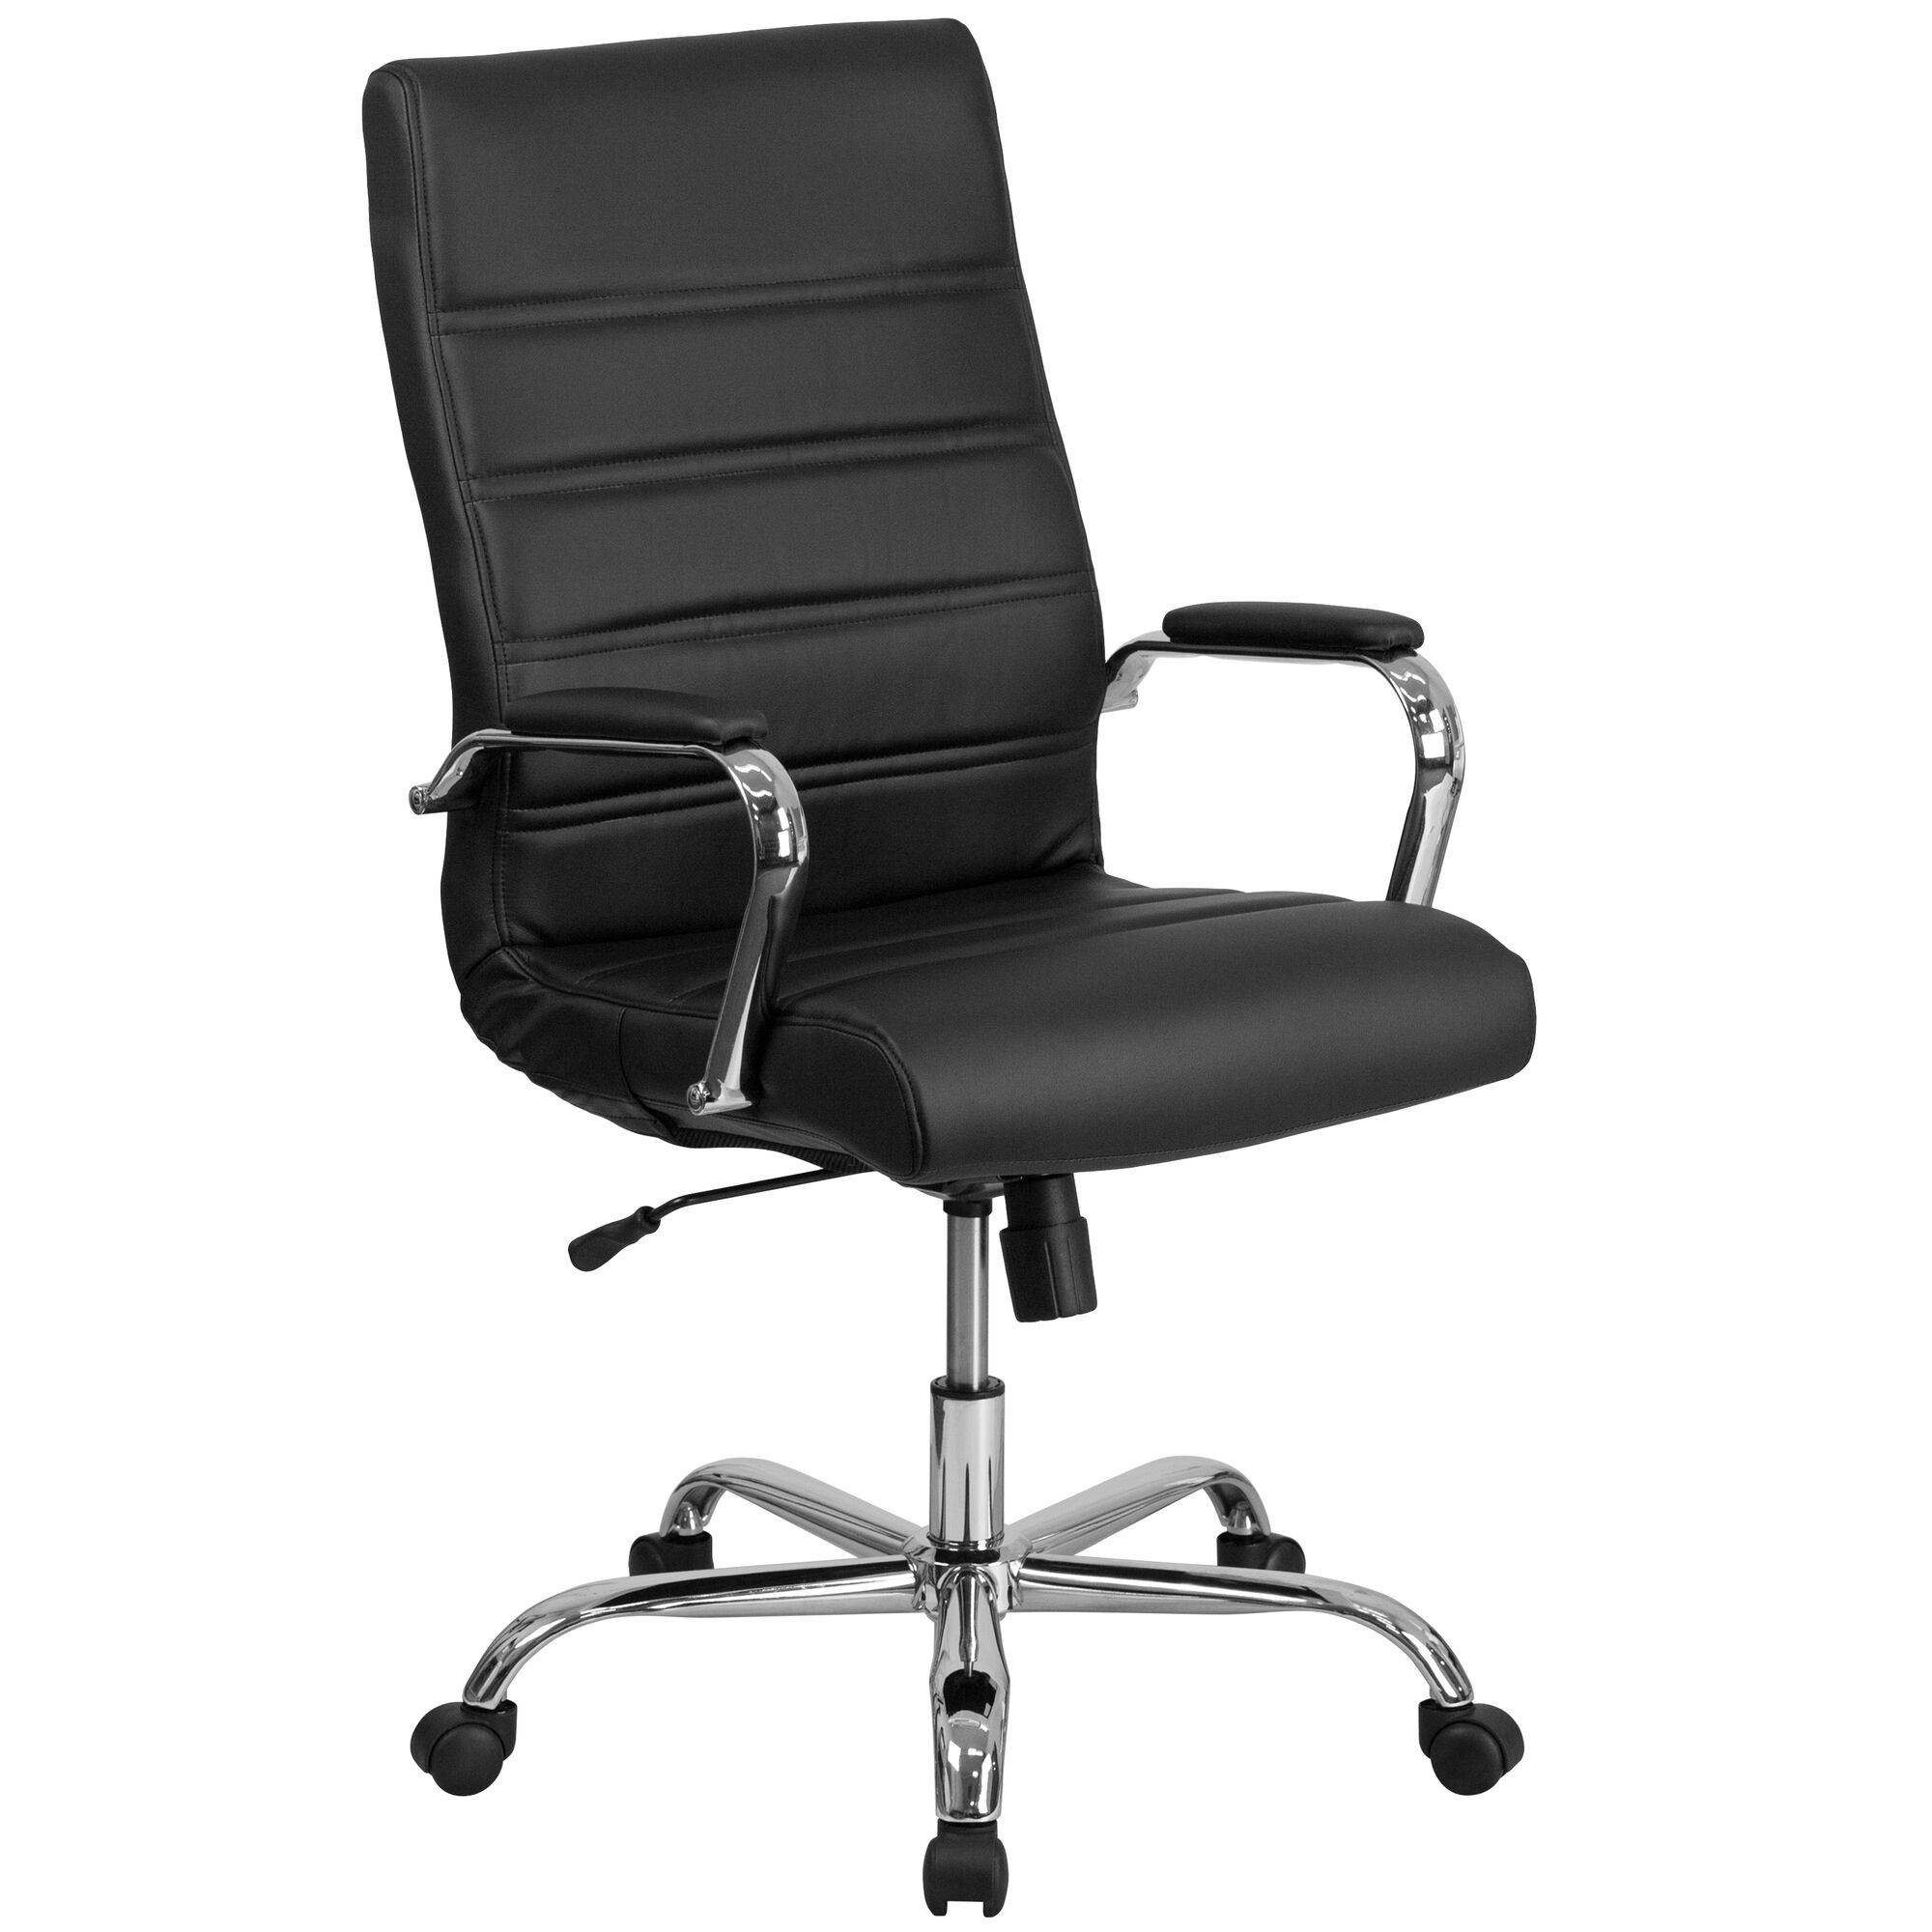 Chair With Wheels >> High Back Office Chair High Back Leathersoft Executive Office Swivel Chair With Wheels